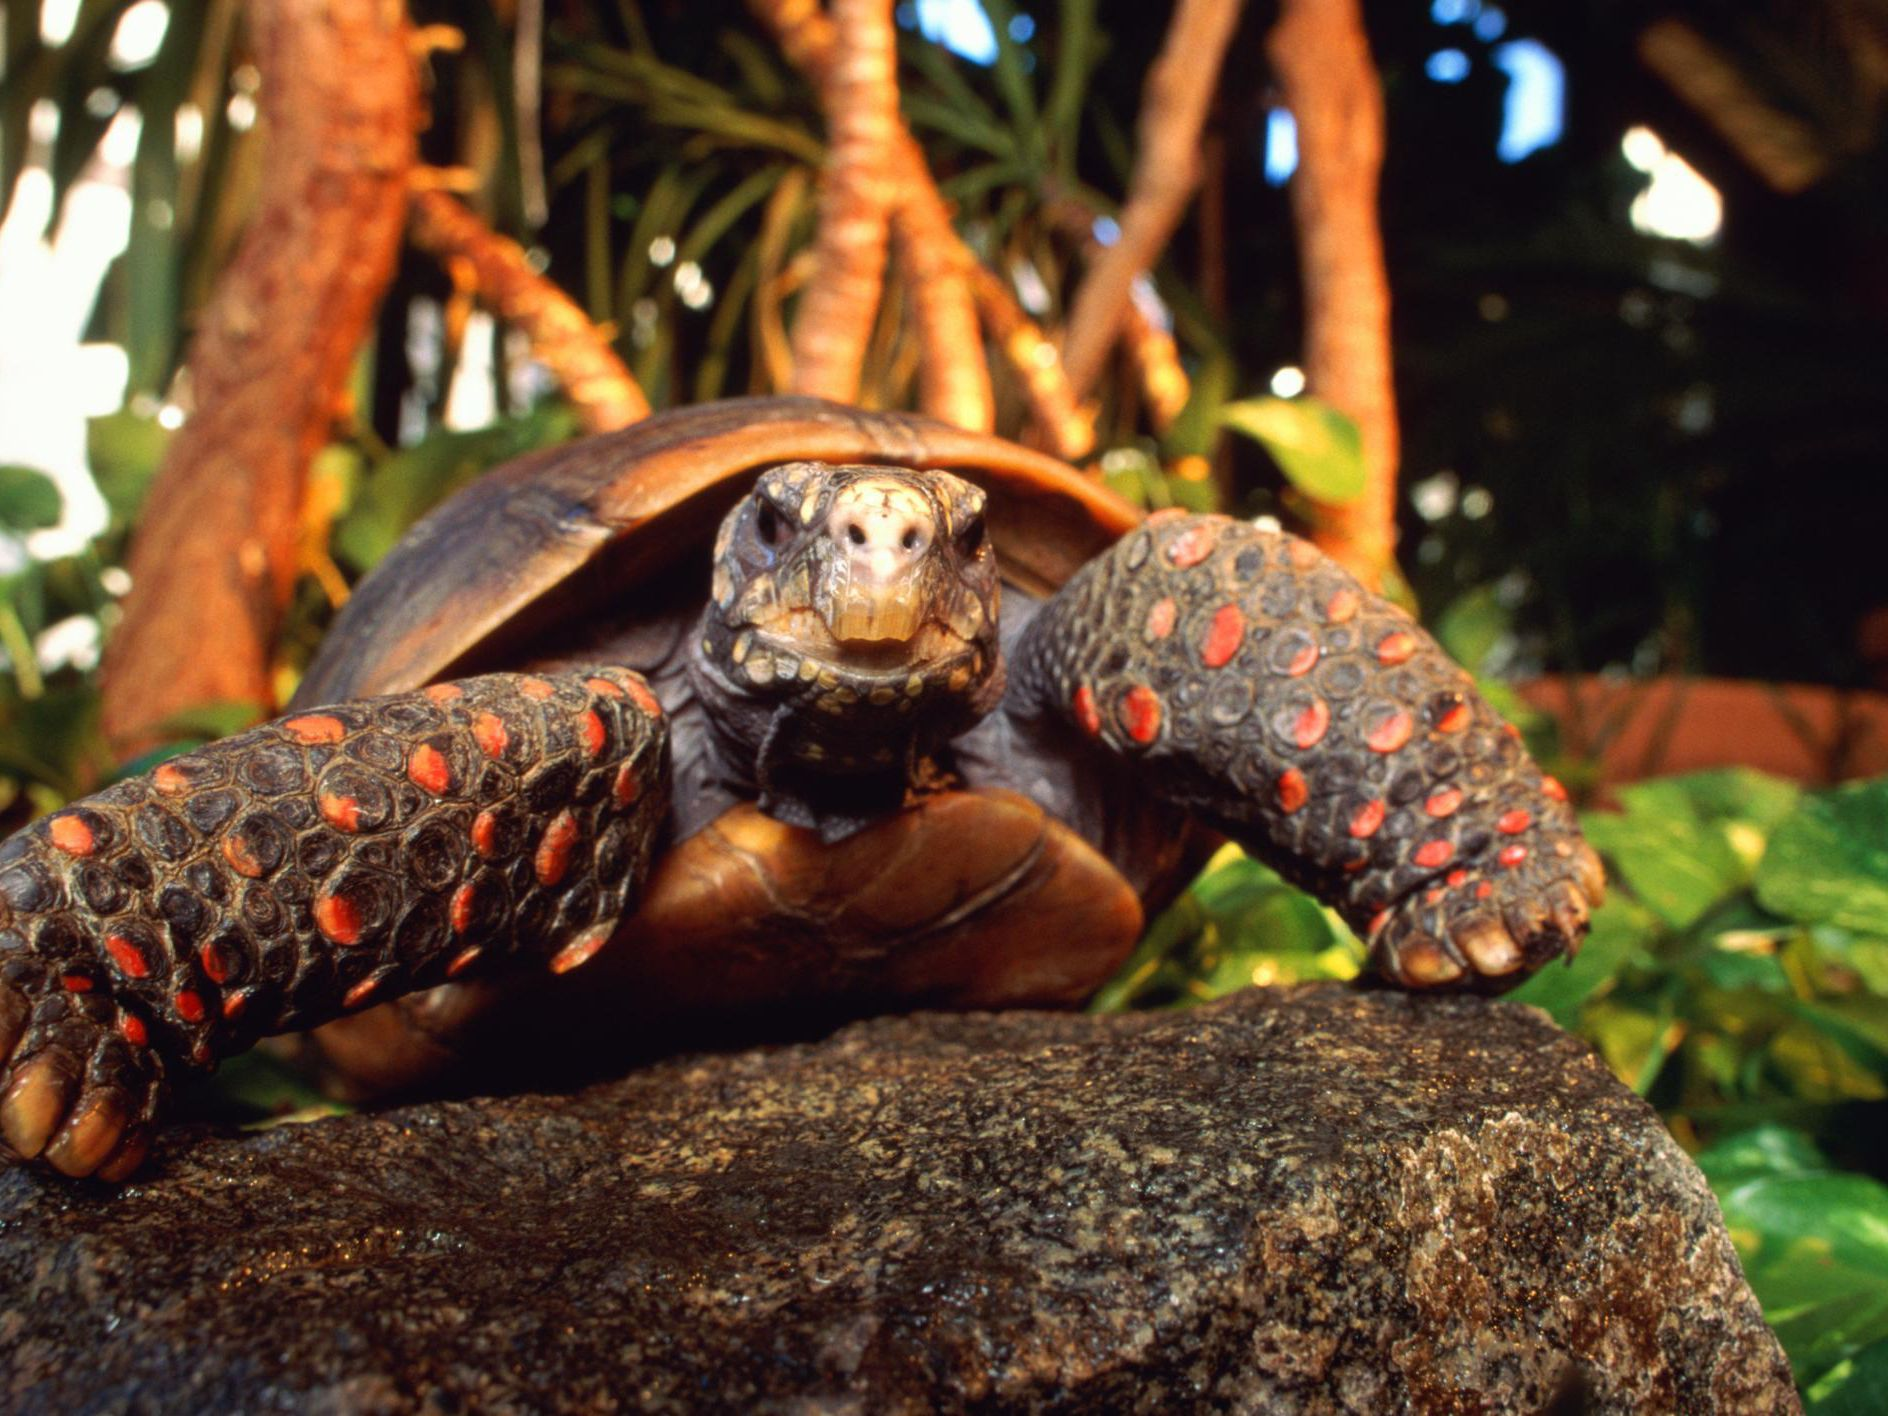 Redfoot Tortoise For Sale Near Me - Risala Blog